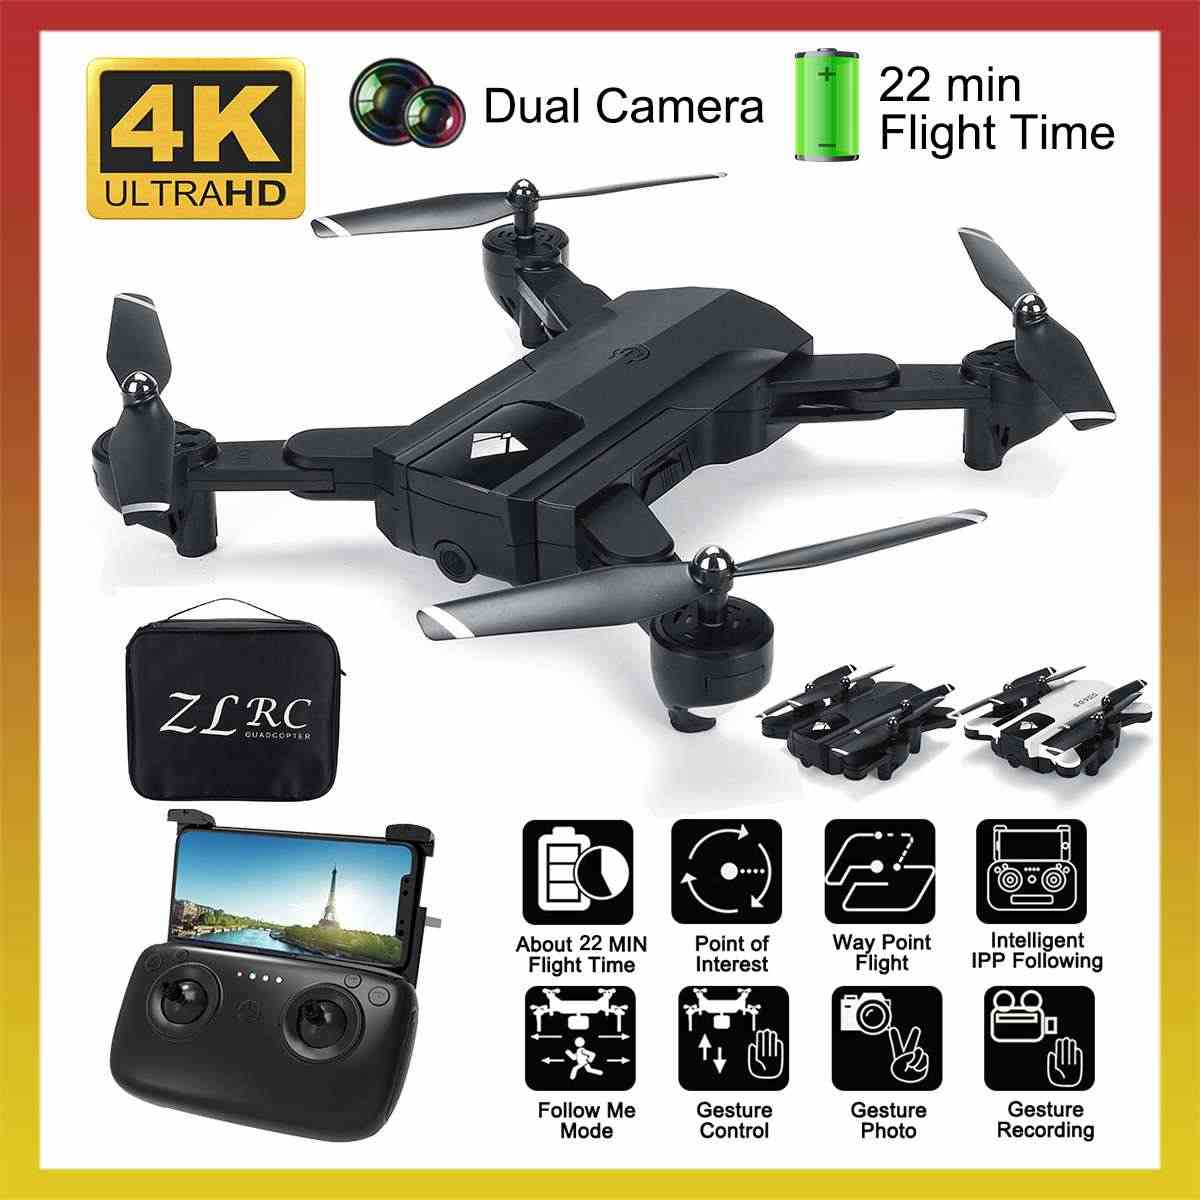 SG900 Opvouwbare drone profissional met Dual Camera drone 4K Selfie WiFi FPV Groothoek Optische Flow RC Quadcopter Helicopter speelgoed